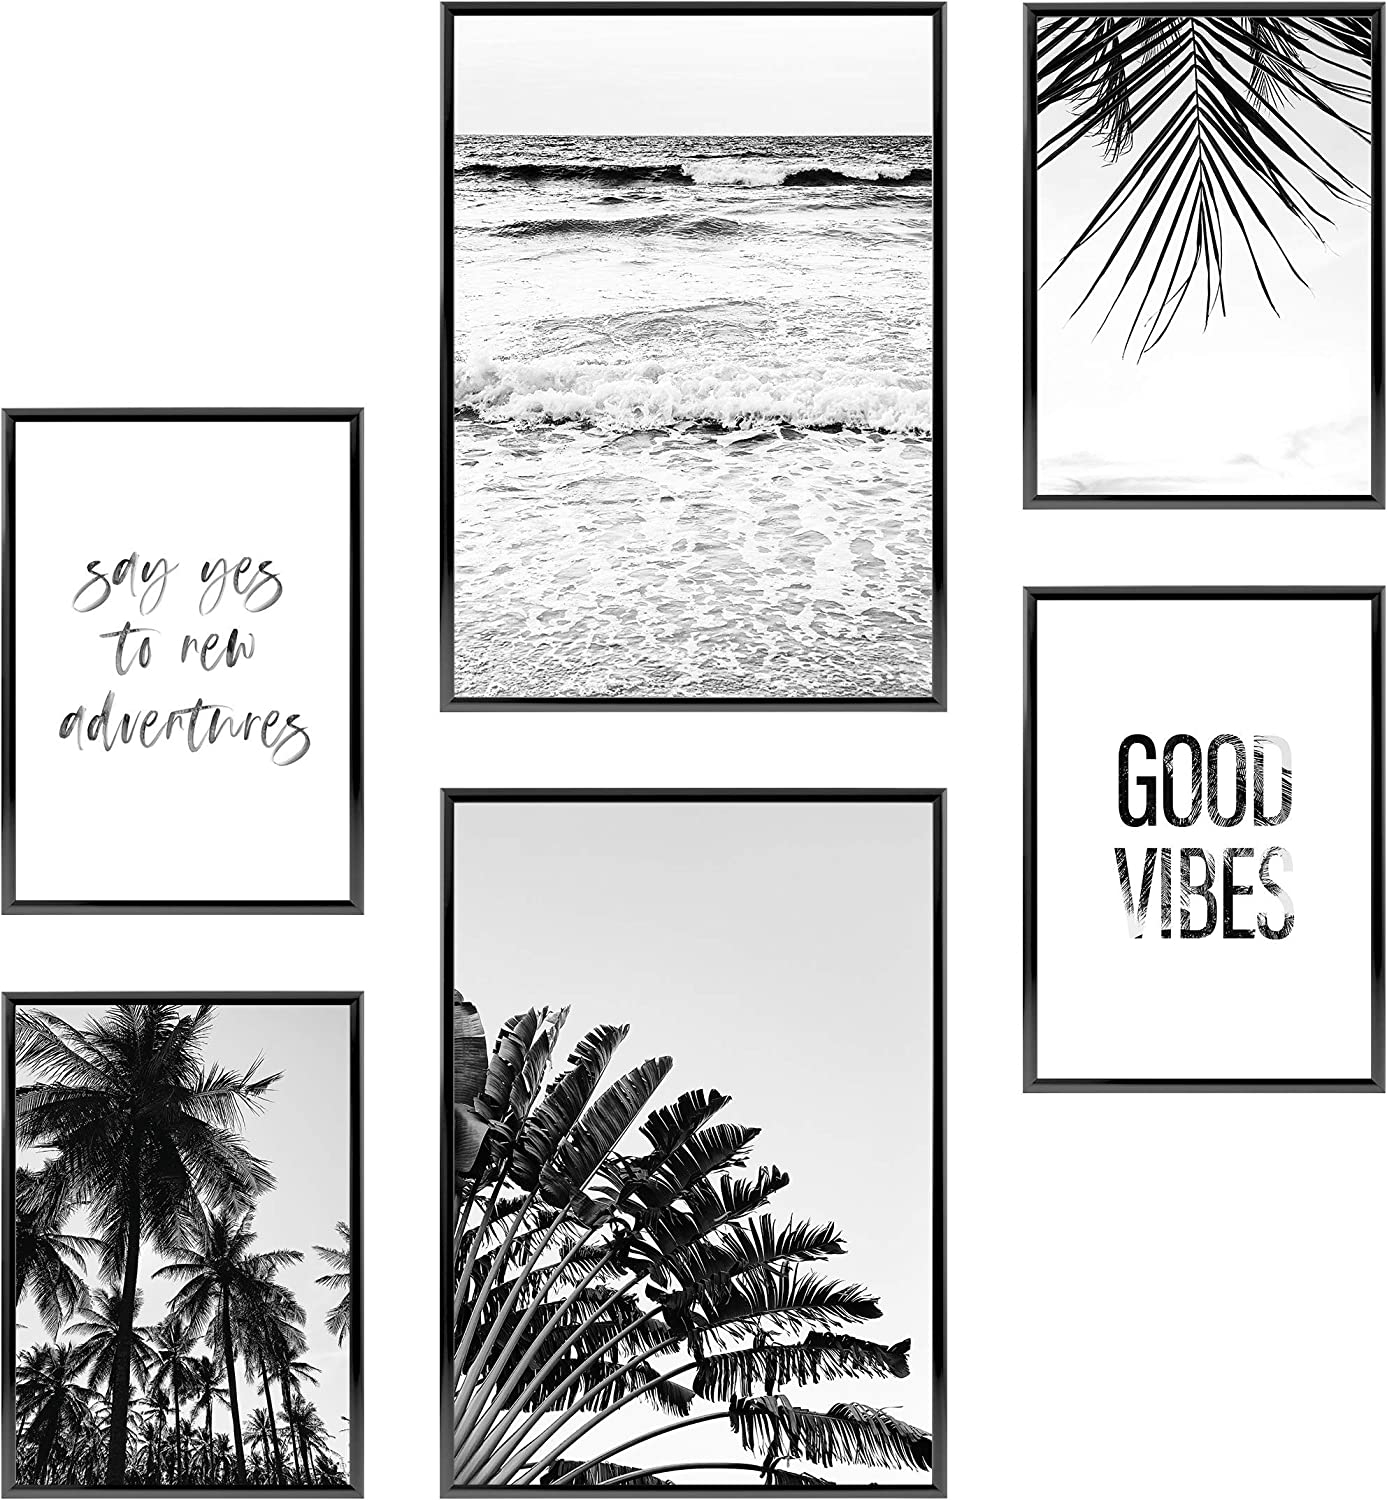 Heimlich Premium Set of Prints | UNFRAMED | Stylish Photo and Quote Prints Fashion Wall Decor | Glam Wall Decor for Living Room and Bedroom | 2 x 11x17 and 4 x 8.5x11 | » Good Vibes «